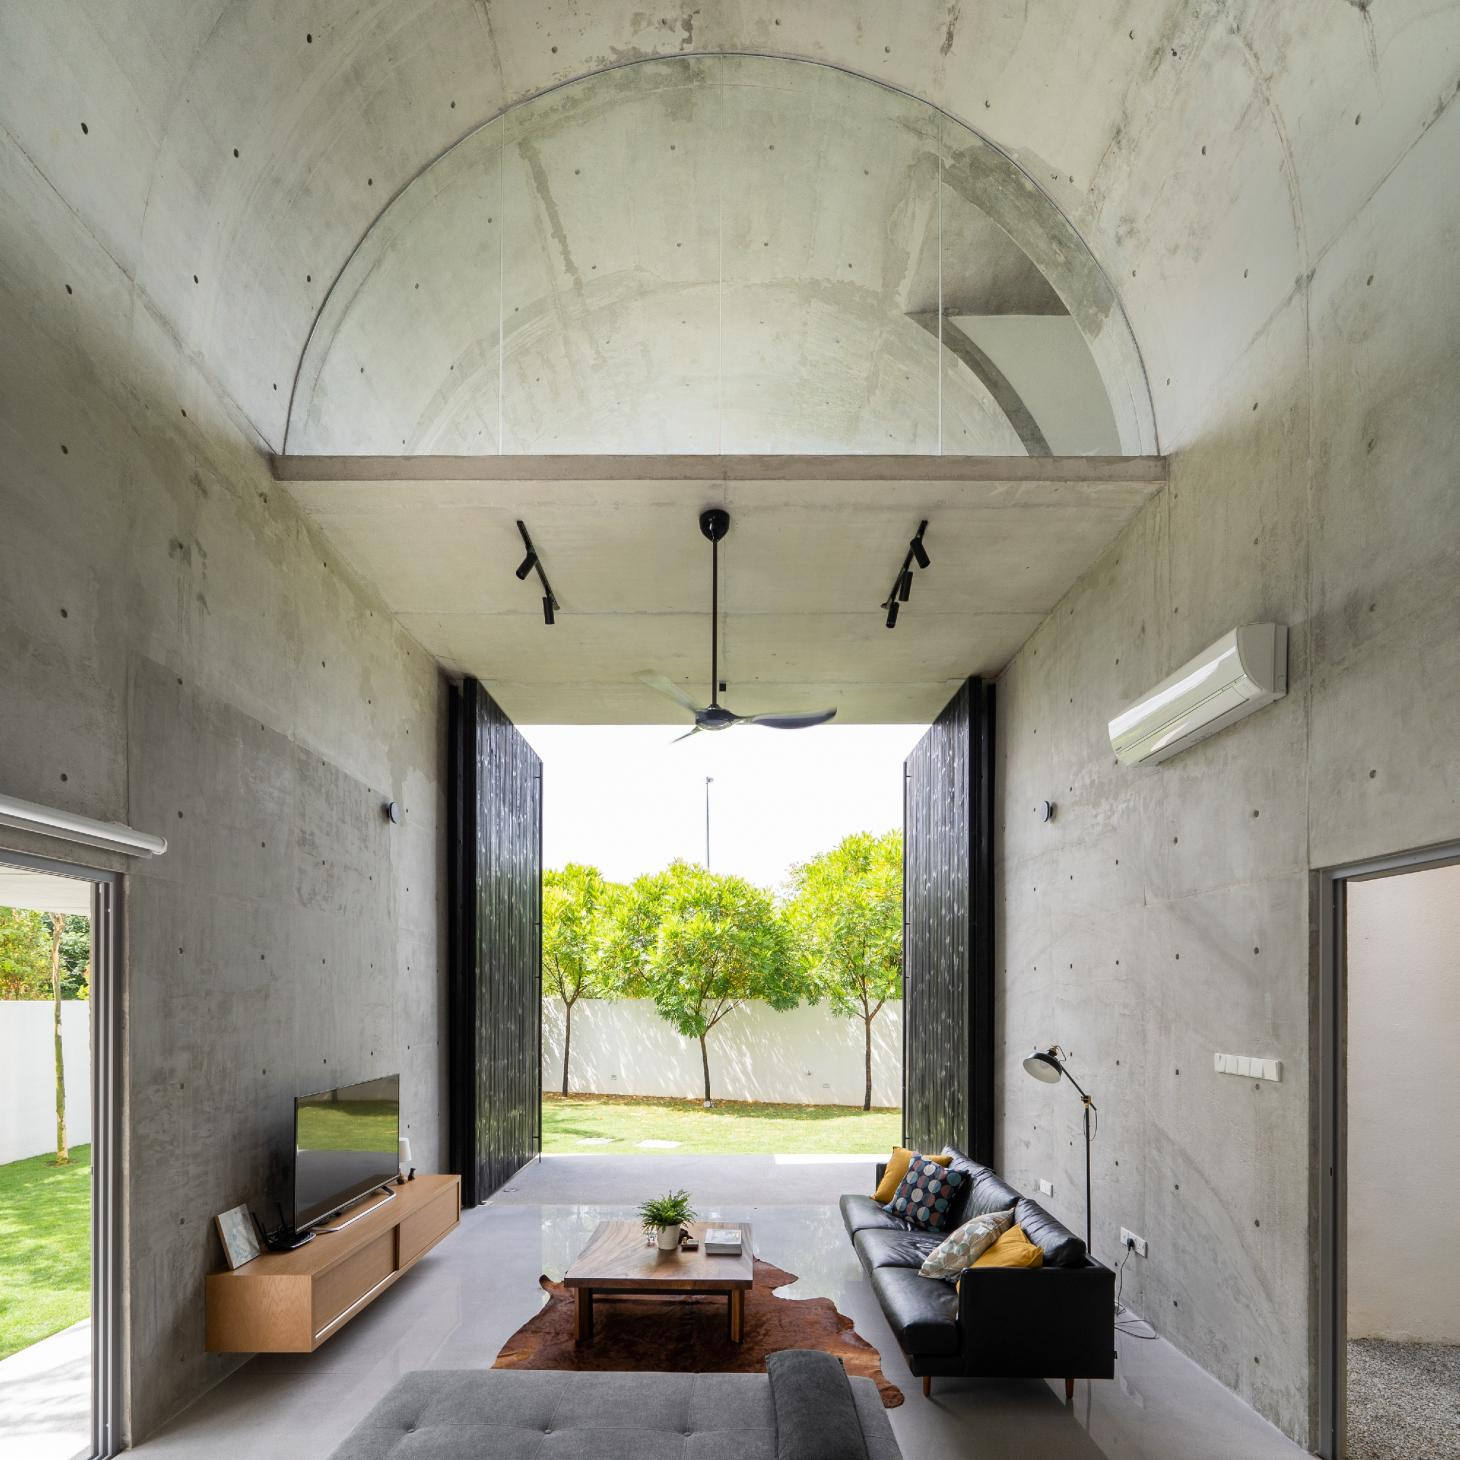 Bewboc house in Malaysia within the concrete extension looking out